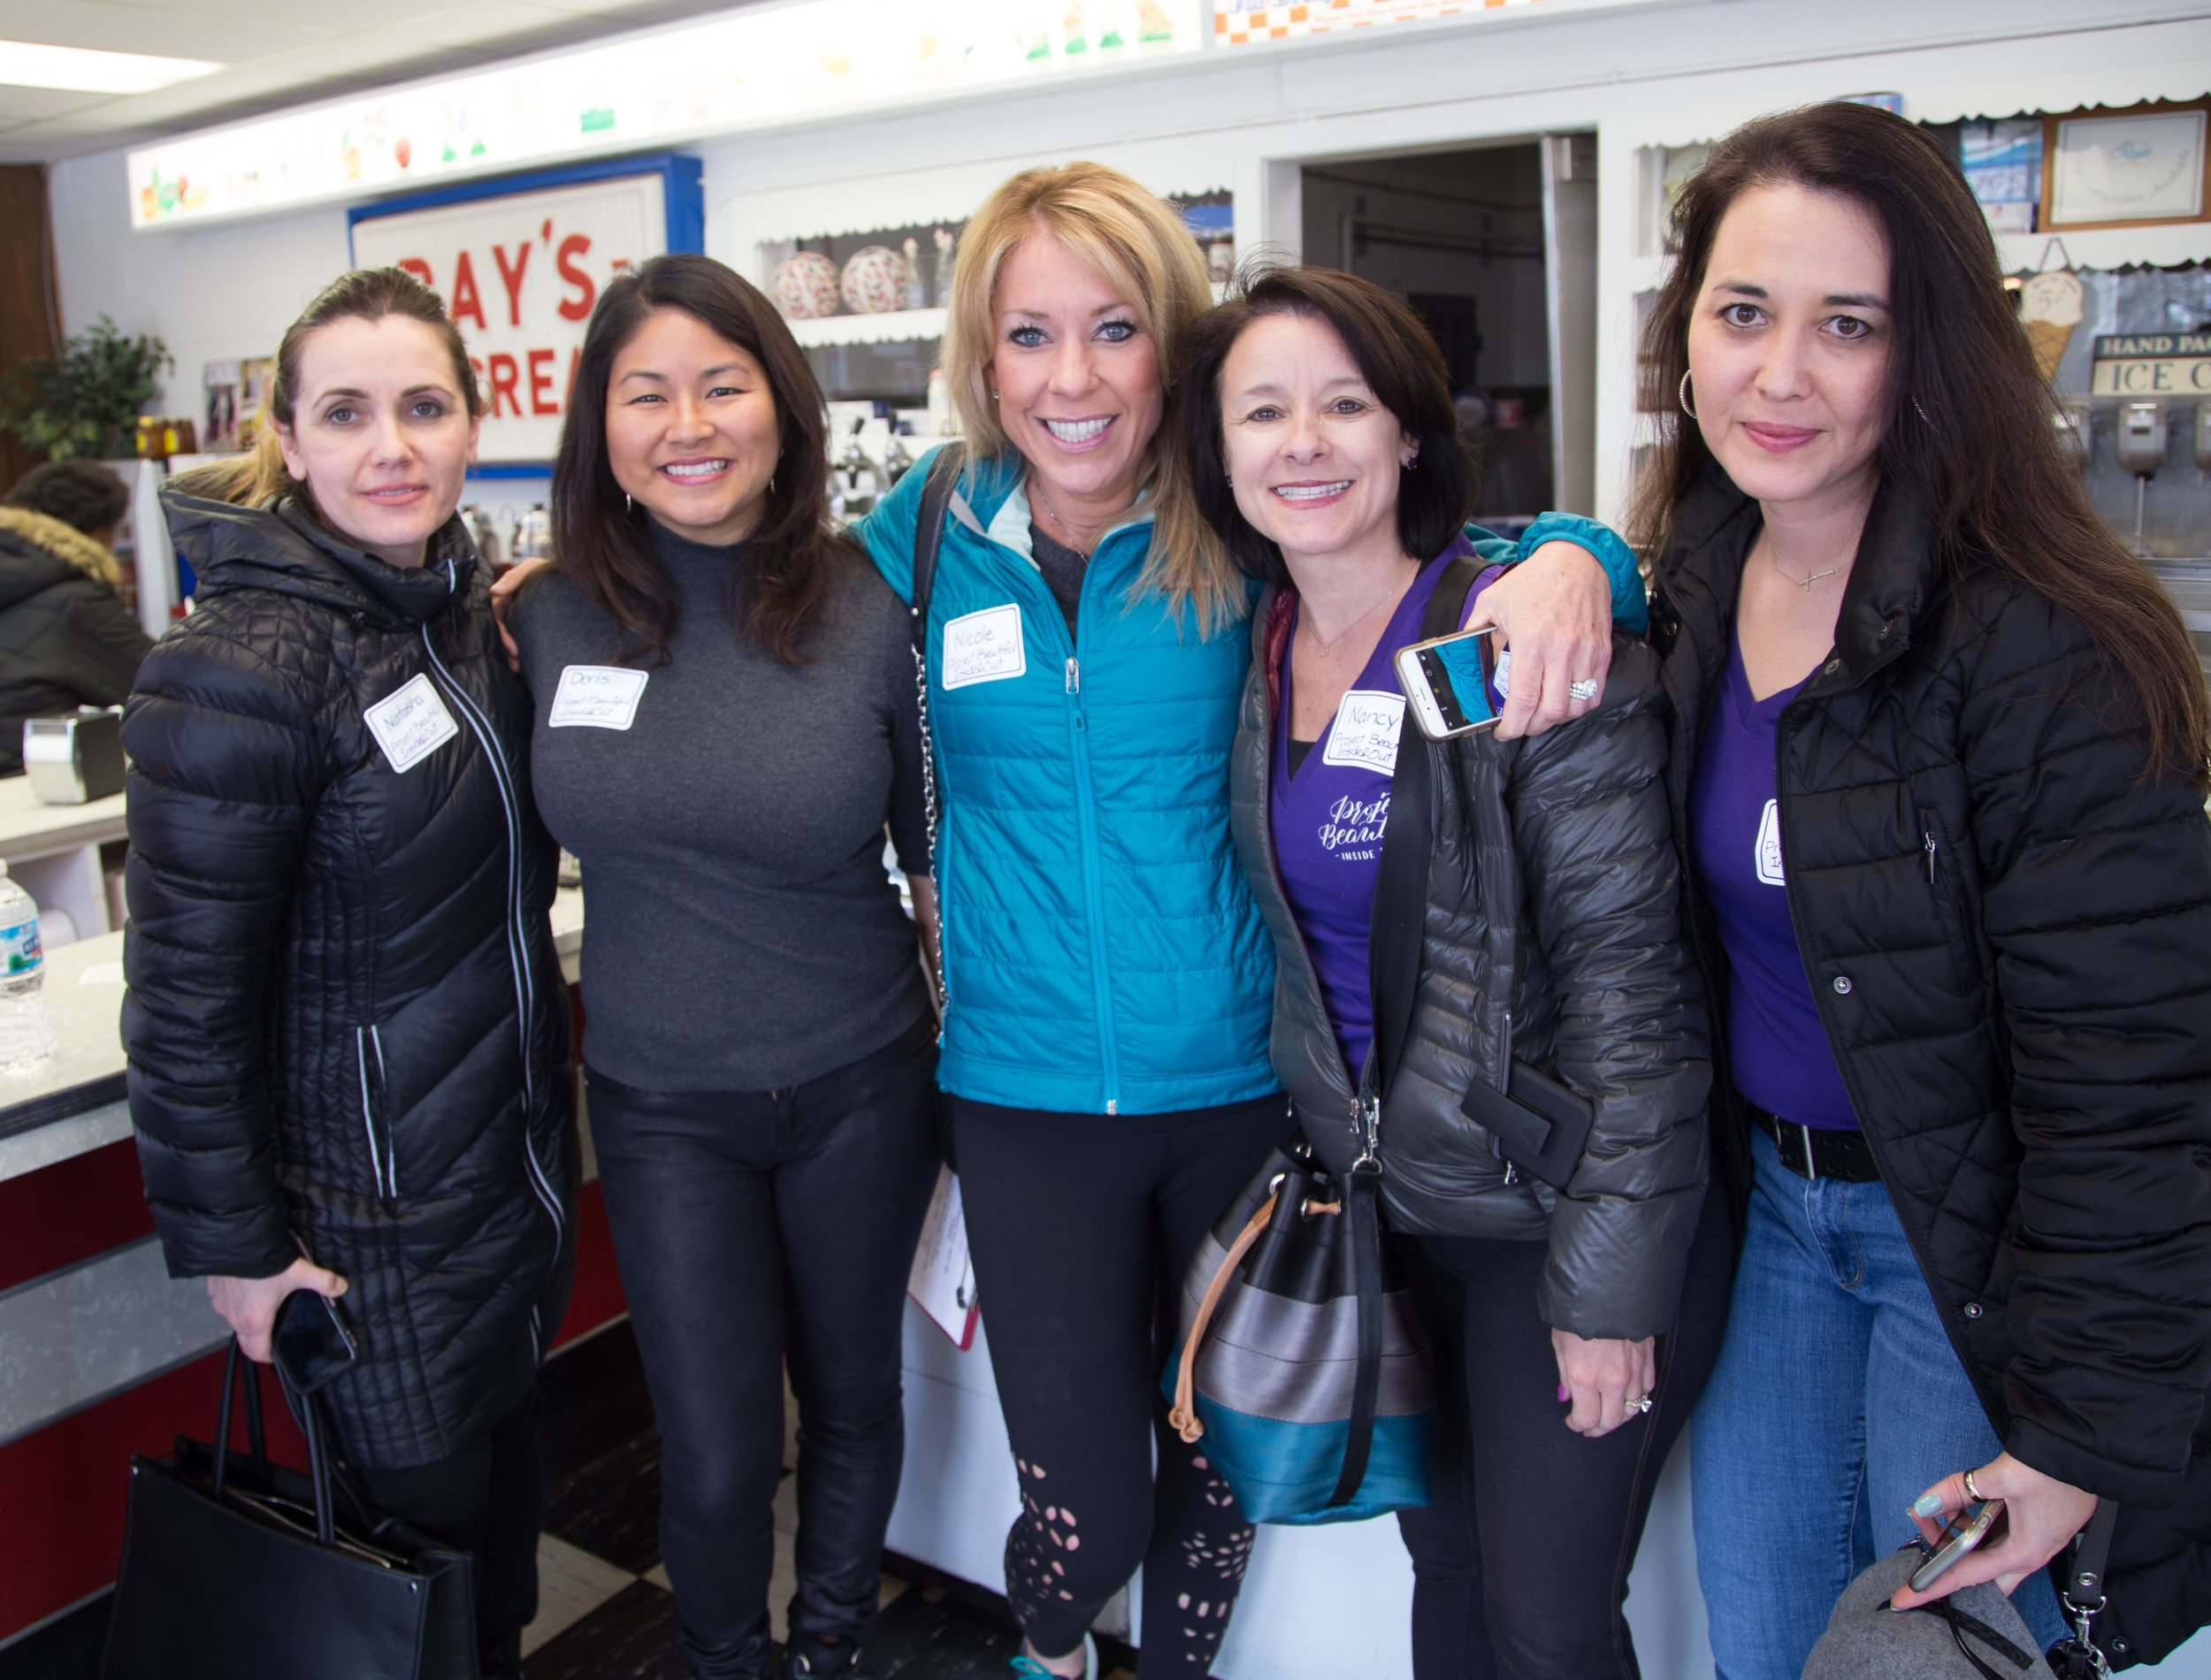 Team Project Beautiful - Inside & Out - Natasha, Doris, Nicole, Nancy, Lisa!